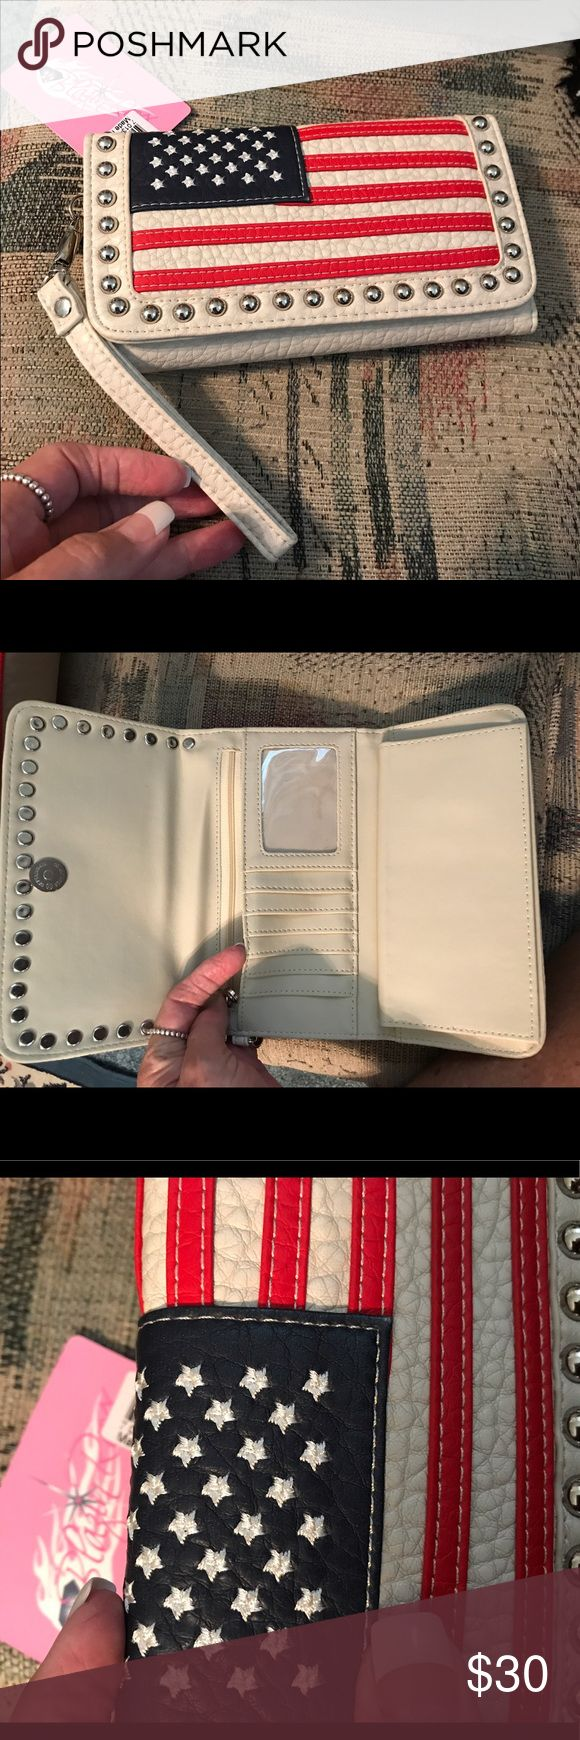 🇺🇸Patriot Wallet🇺🇸 This is a perfect match to my Conceal Carry purse, in my closet. Lots of cc space. Checkbook option ( removable). New. Non smoking home. Excellent condition. Has detachable strap. Very soft. Beautiful!! The stitching of the flags are excellent. Blazin' Roxx Bags Wallets